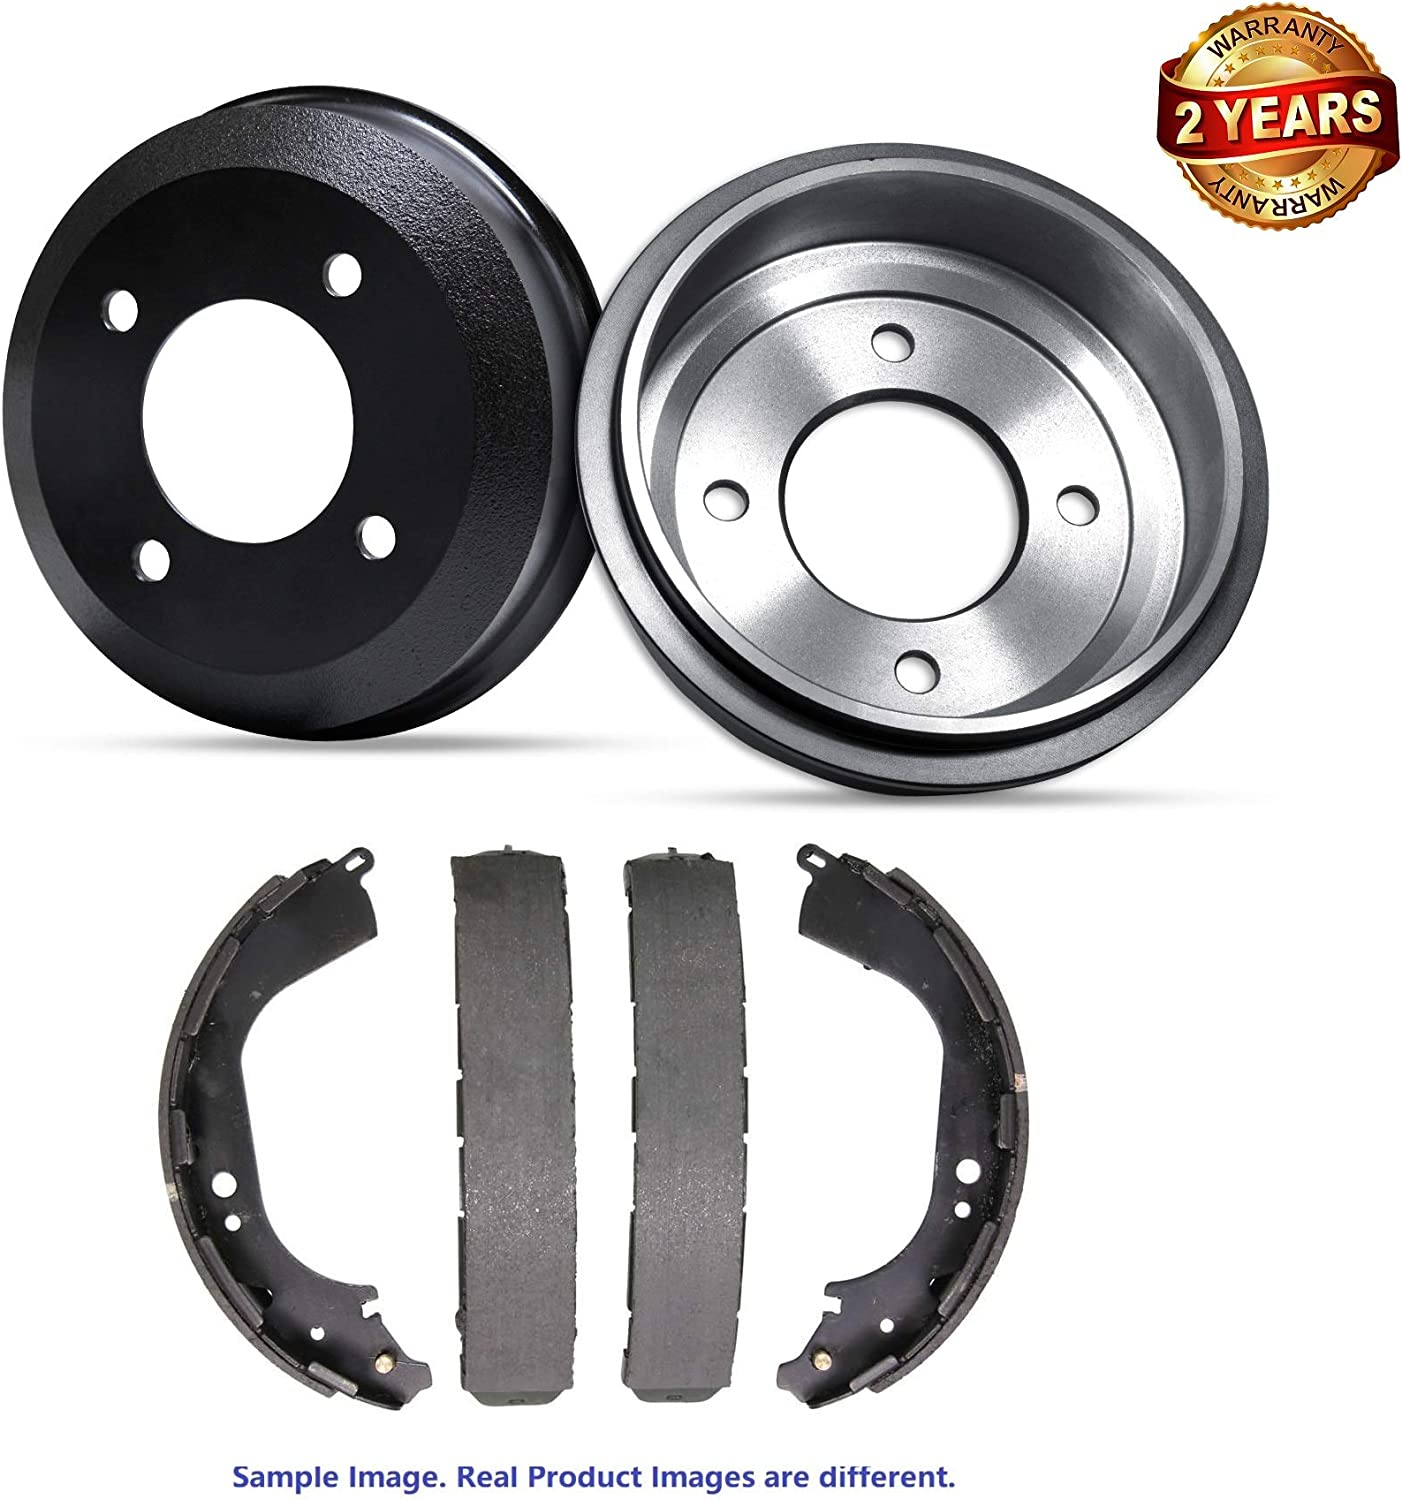 For 2007 Dodge Dakota ST Premium Quality Rear Brake Drums and Drum Brake Shoes Two Years Warranty Inroble